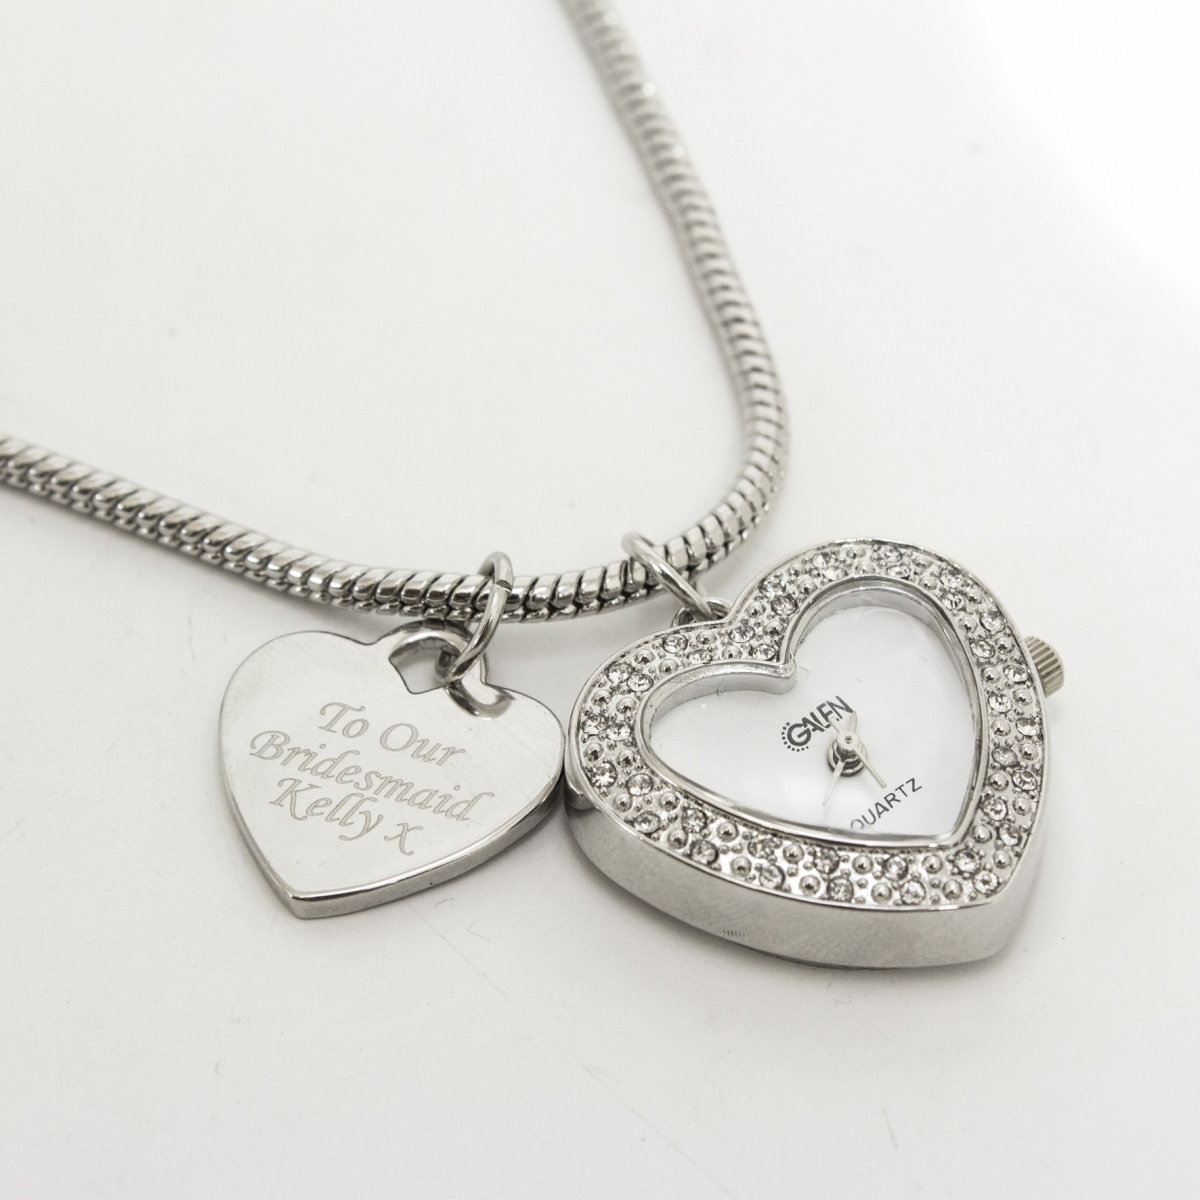 Personalised Watch Charm Necklace